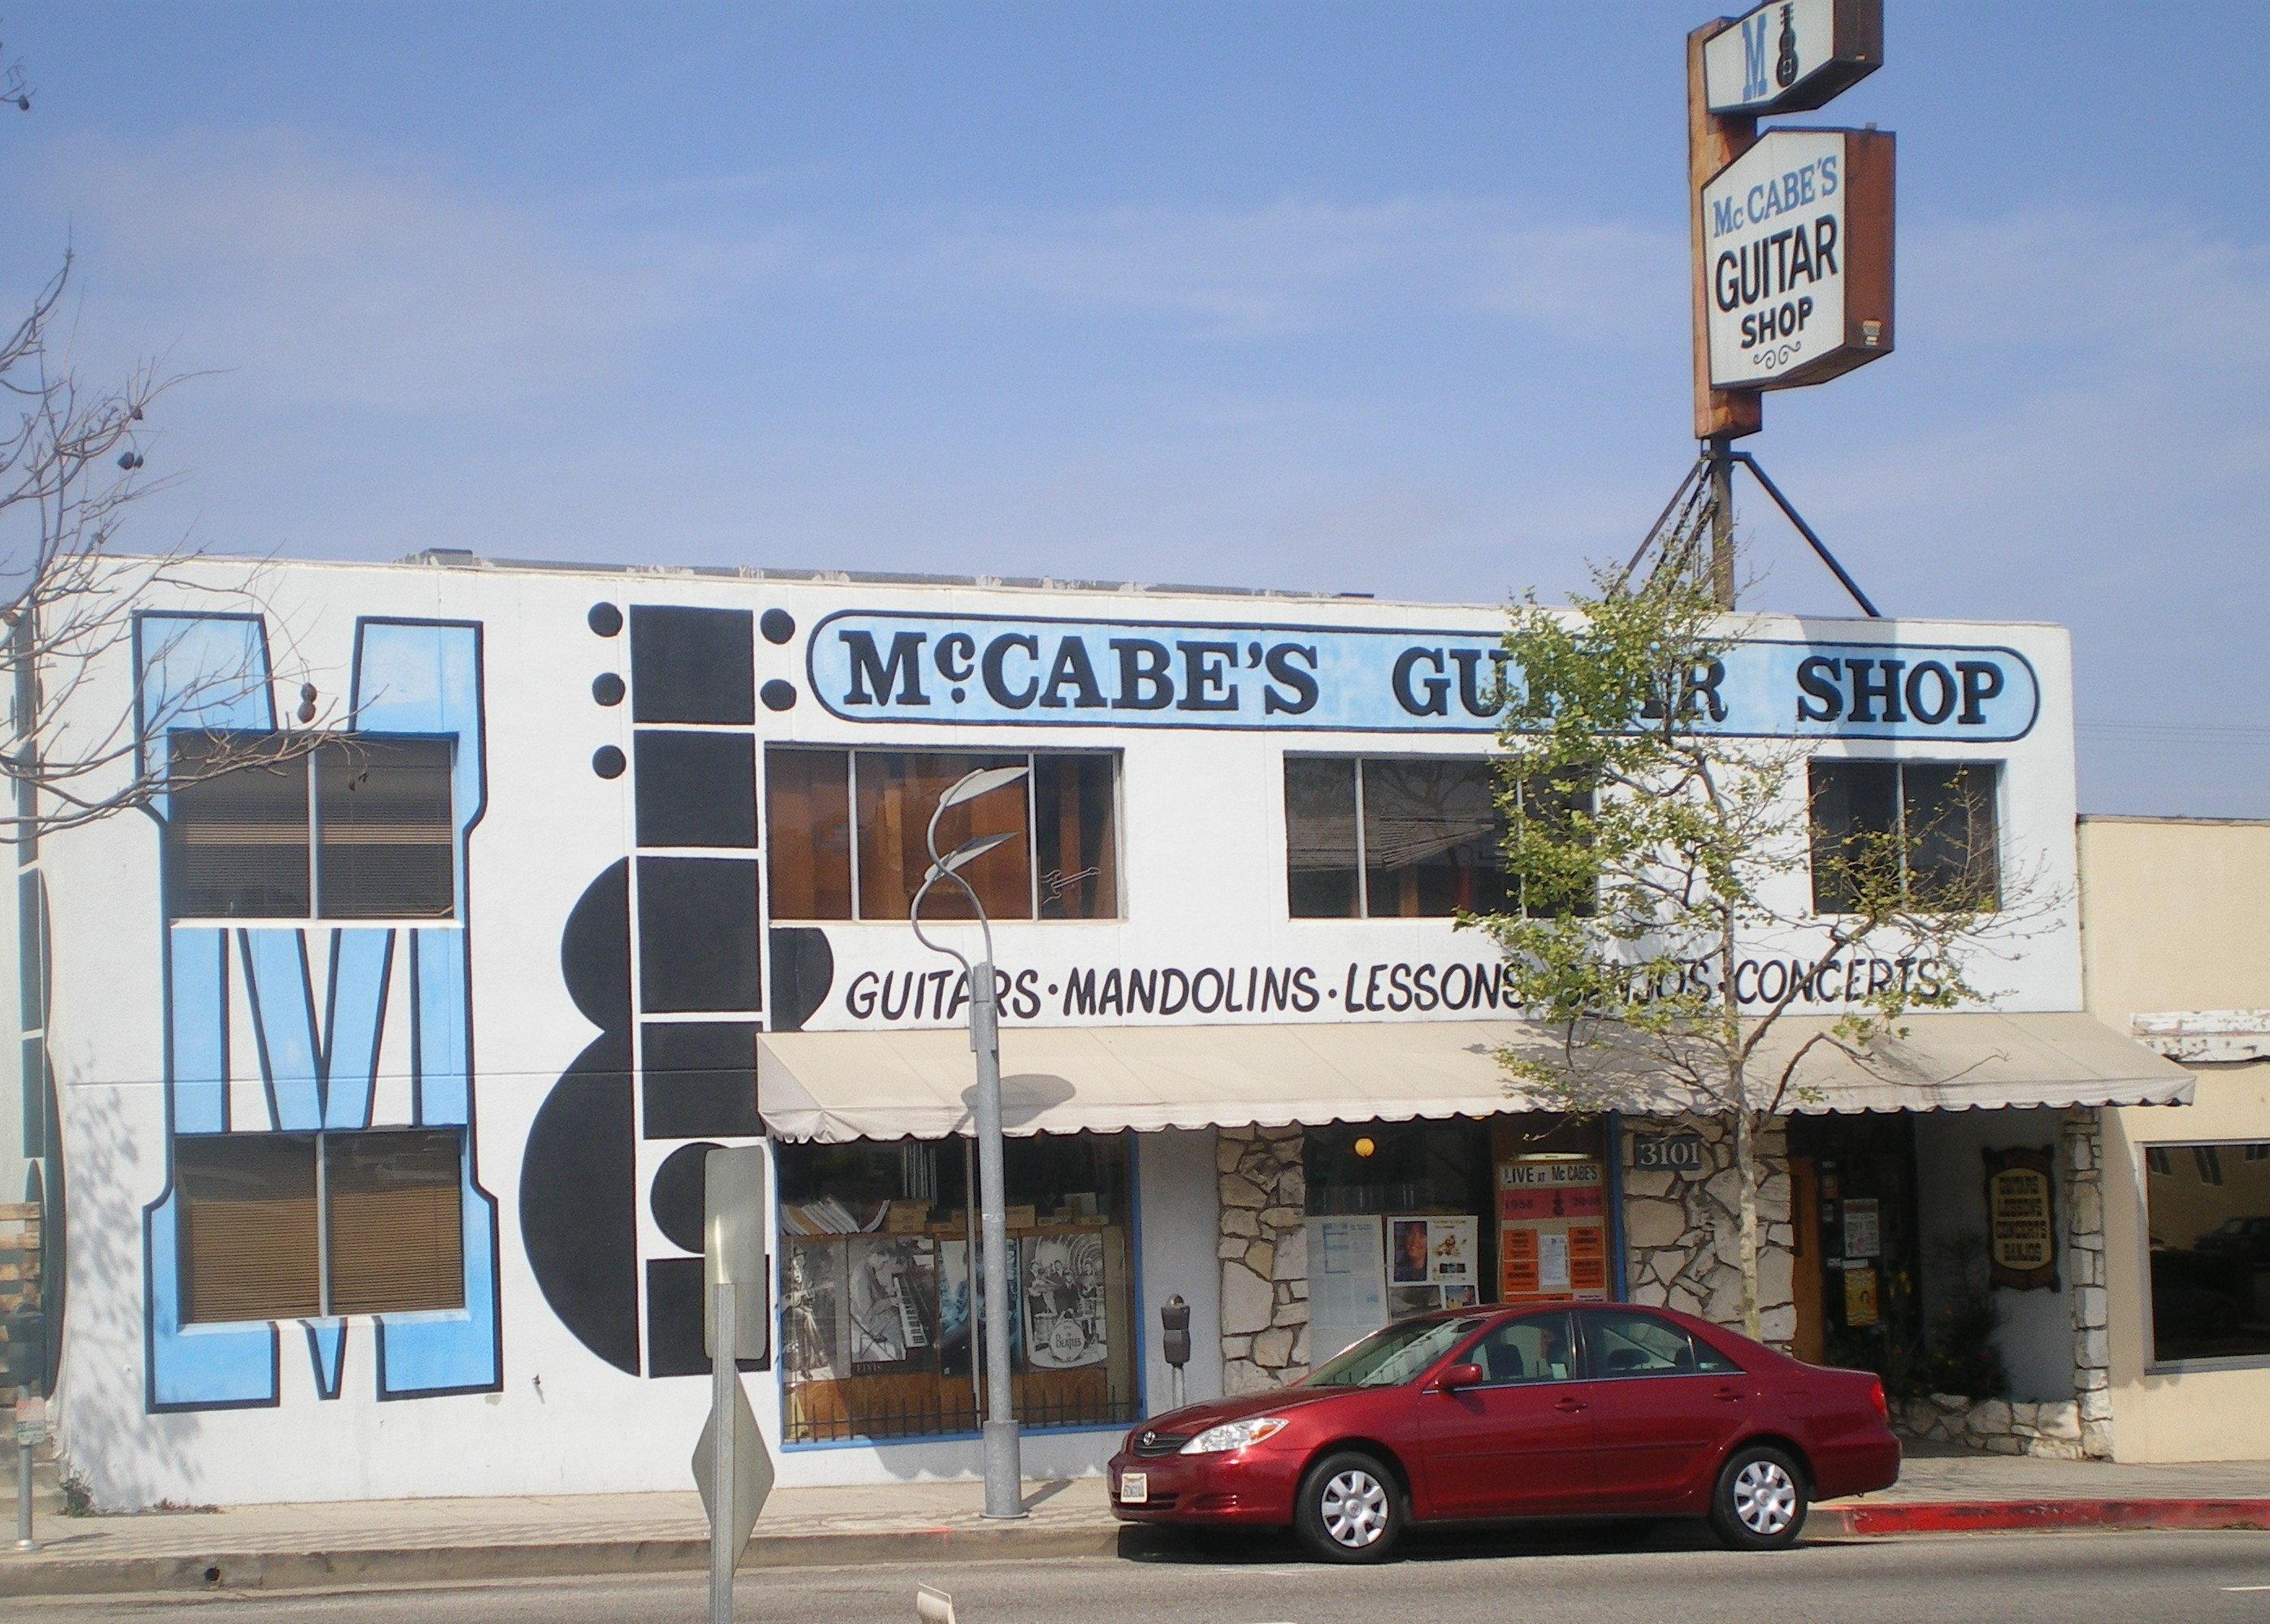 McCabe's Guitar Shop - Wikipedia